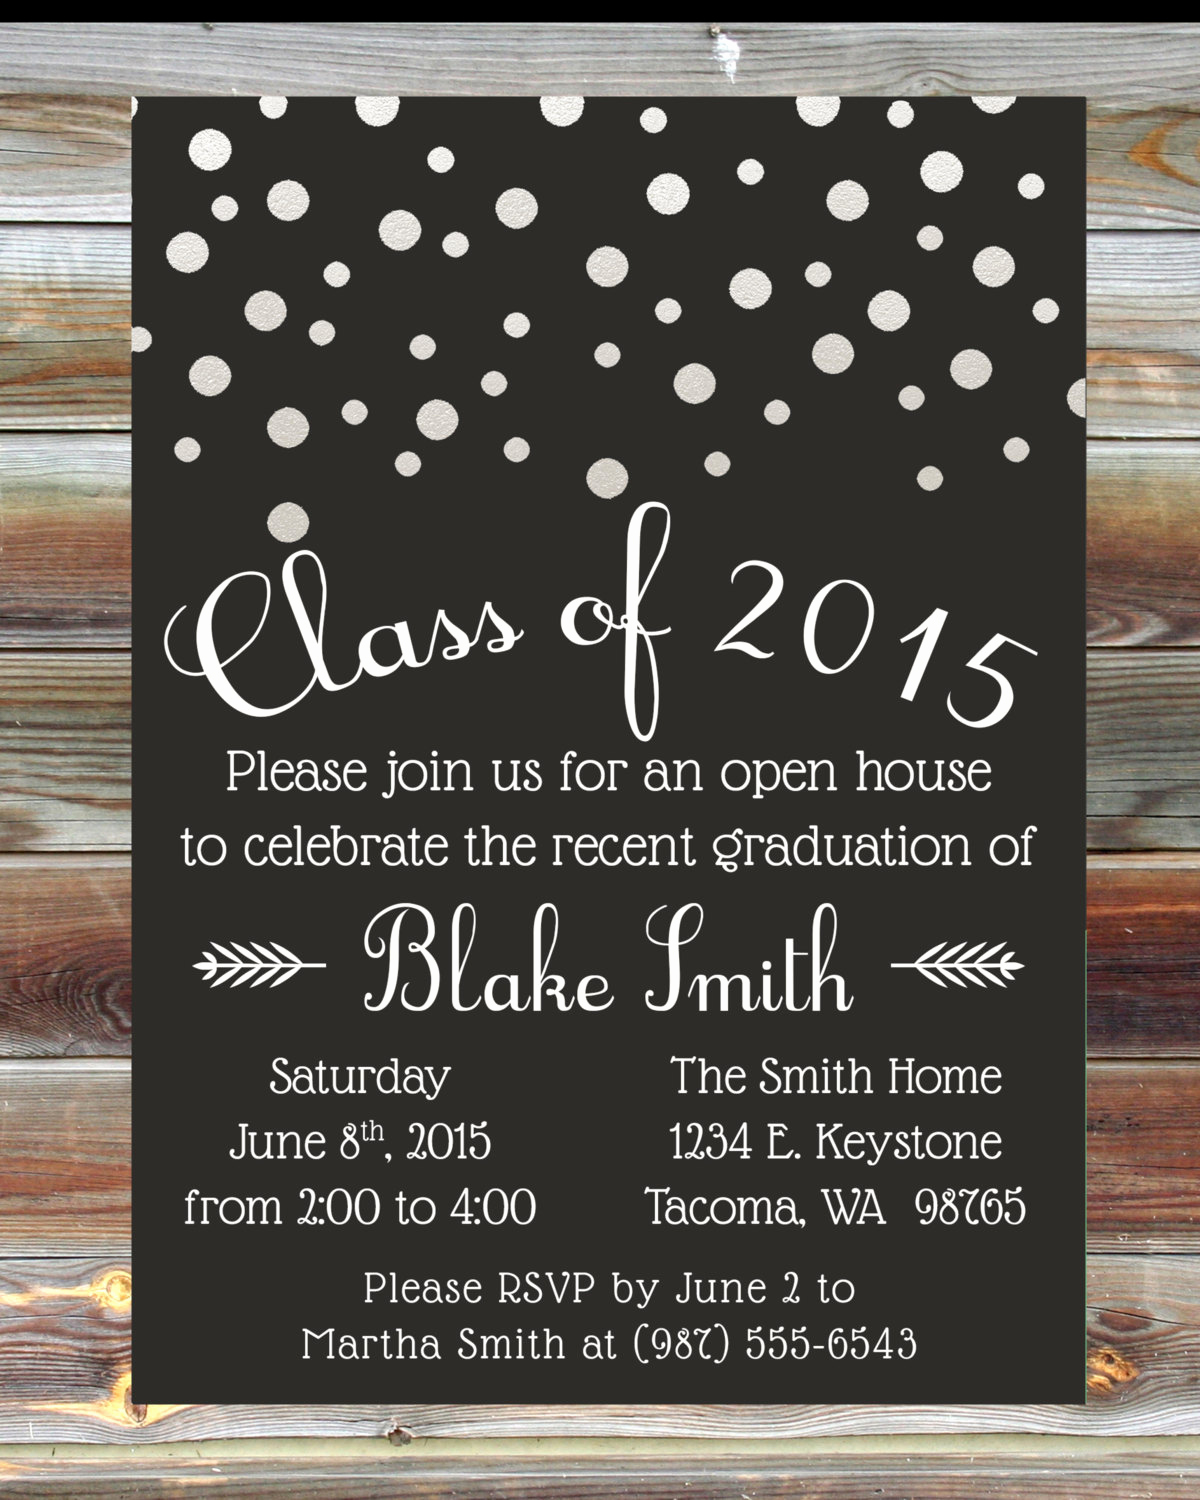 Graduation Open House Invitation Templates Inspirational Custom Color Graduation Open House Invitation Champagne Grad